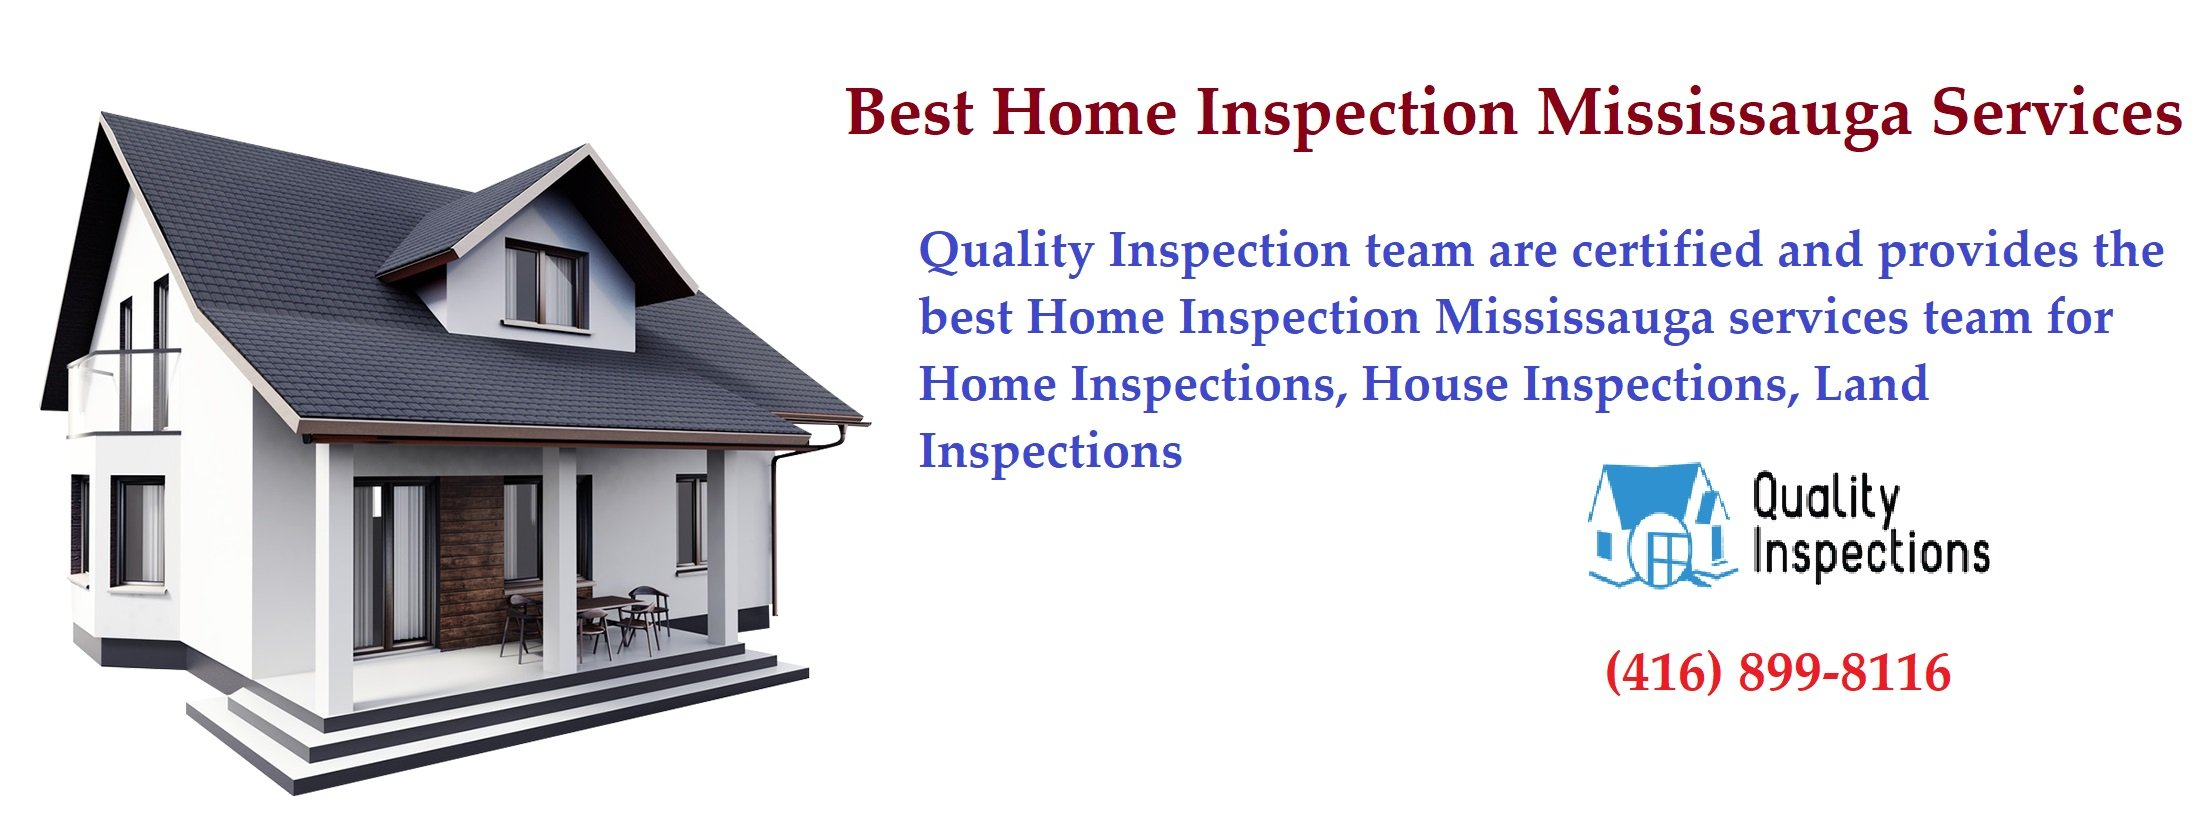 Best Home Inspection Mississauga Services | Quality Inspections